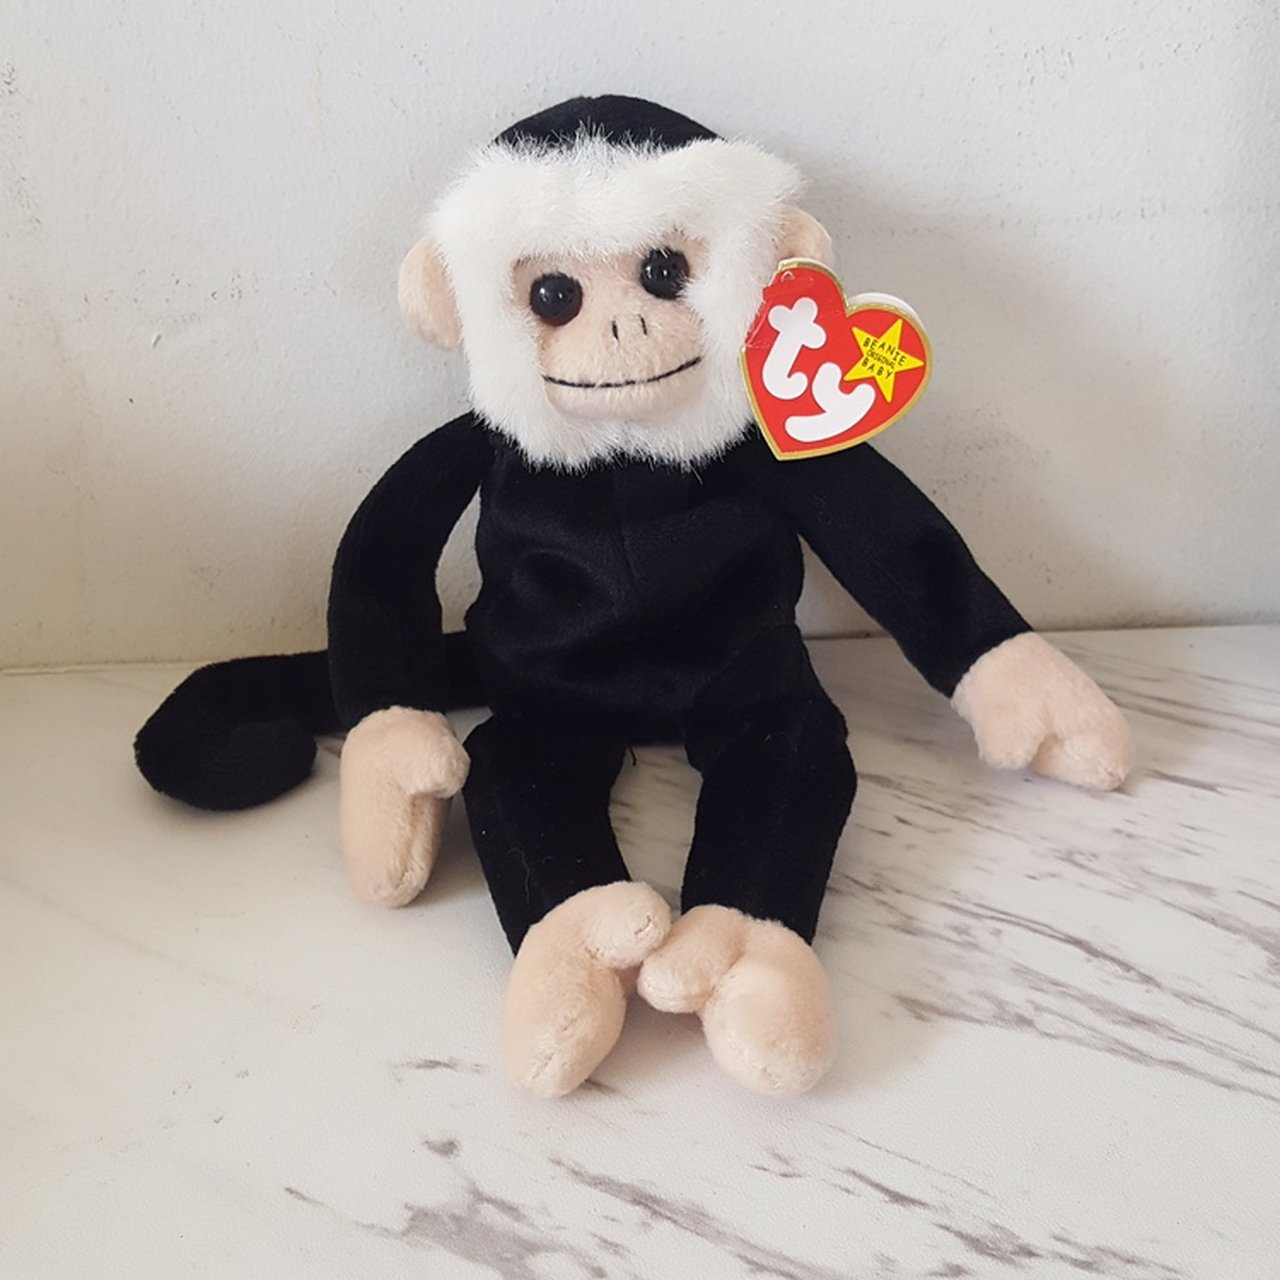 Mooch the original beanie baby Rare collector items  monkey - Depop b274b08e11d